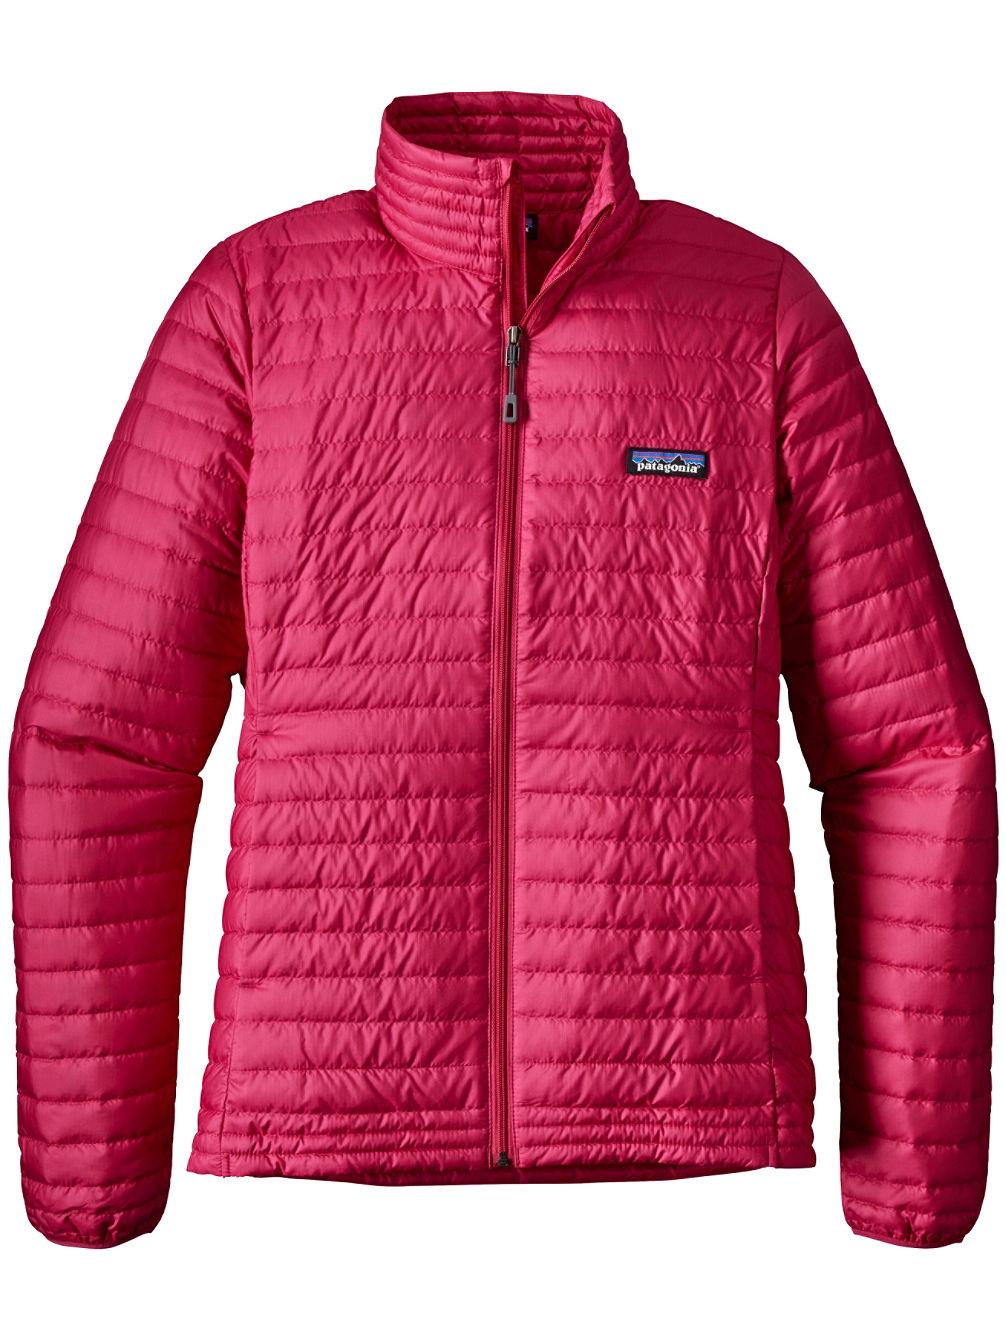 Where can i buy a patagonia jacket